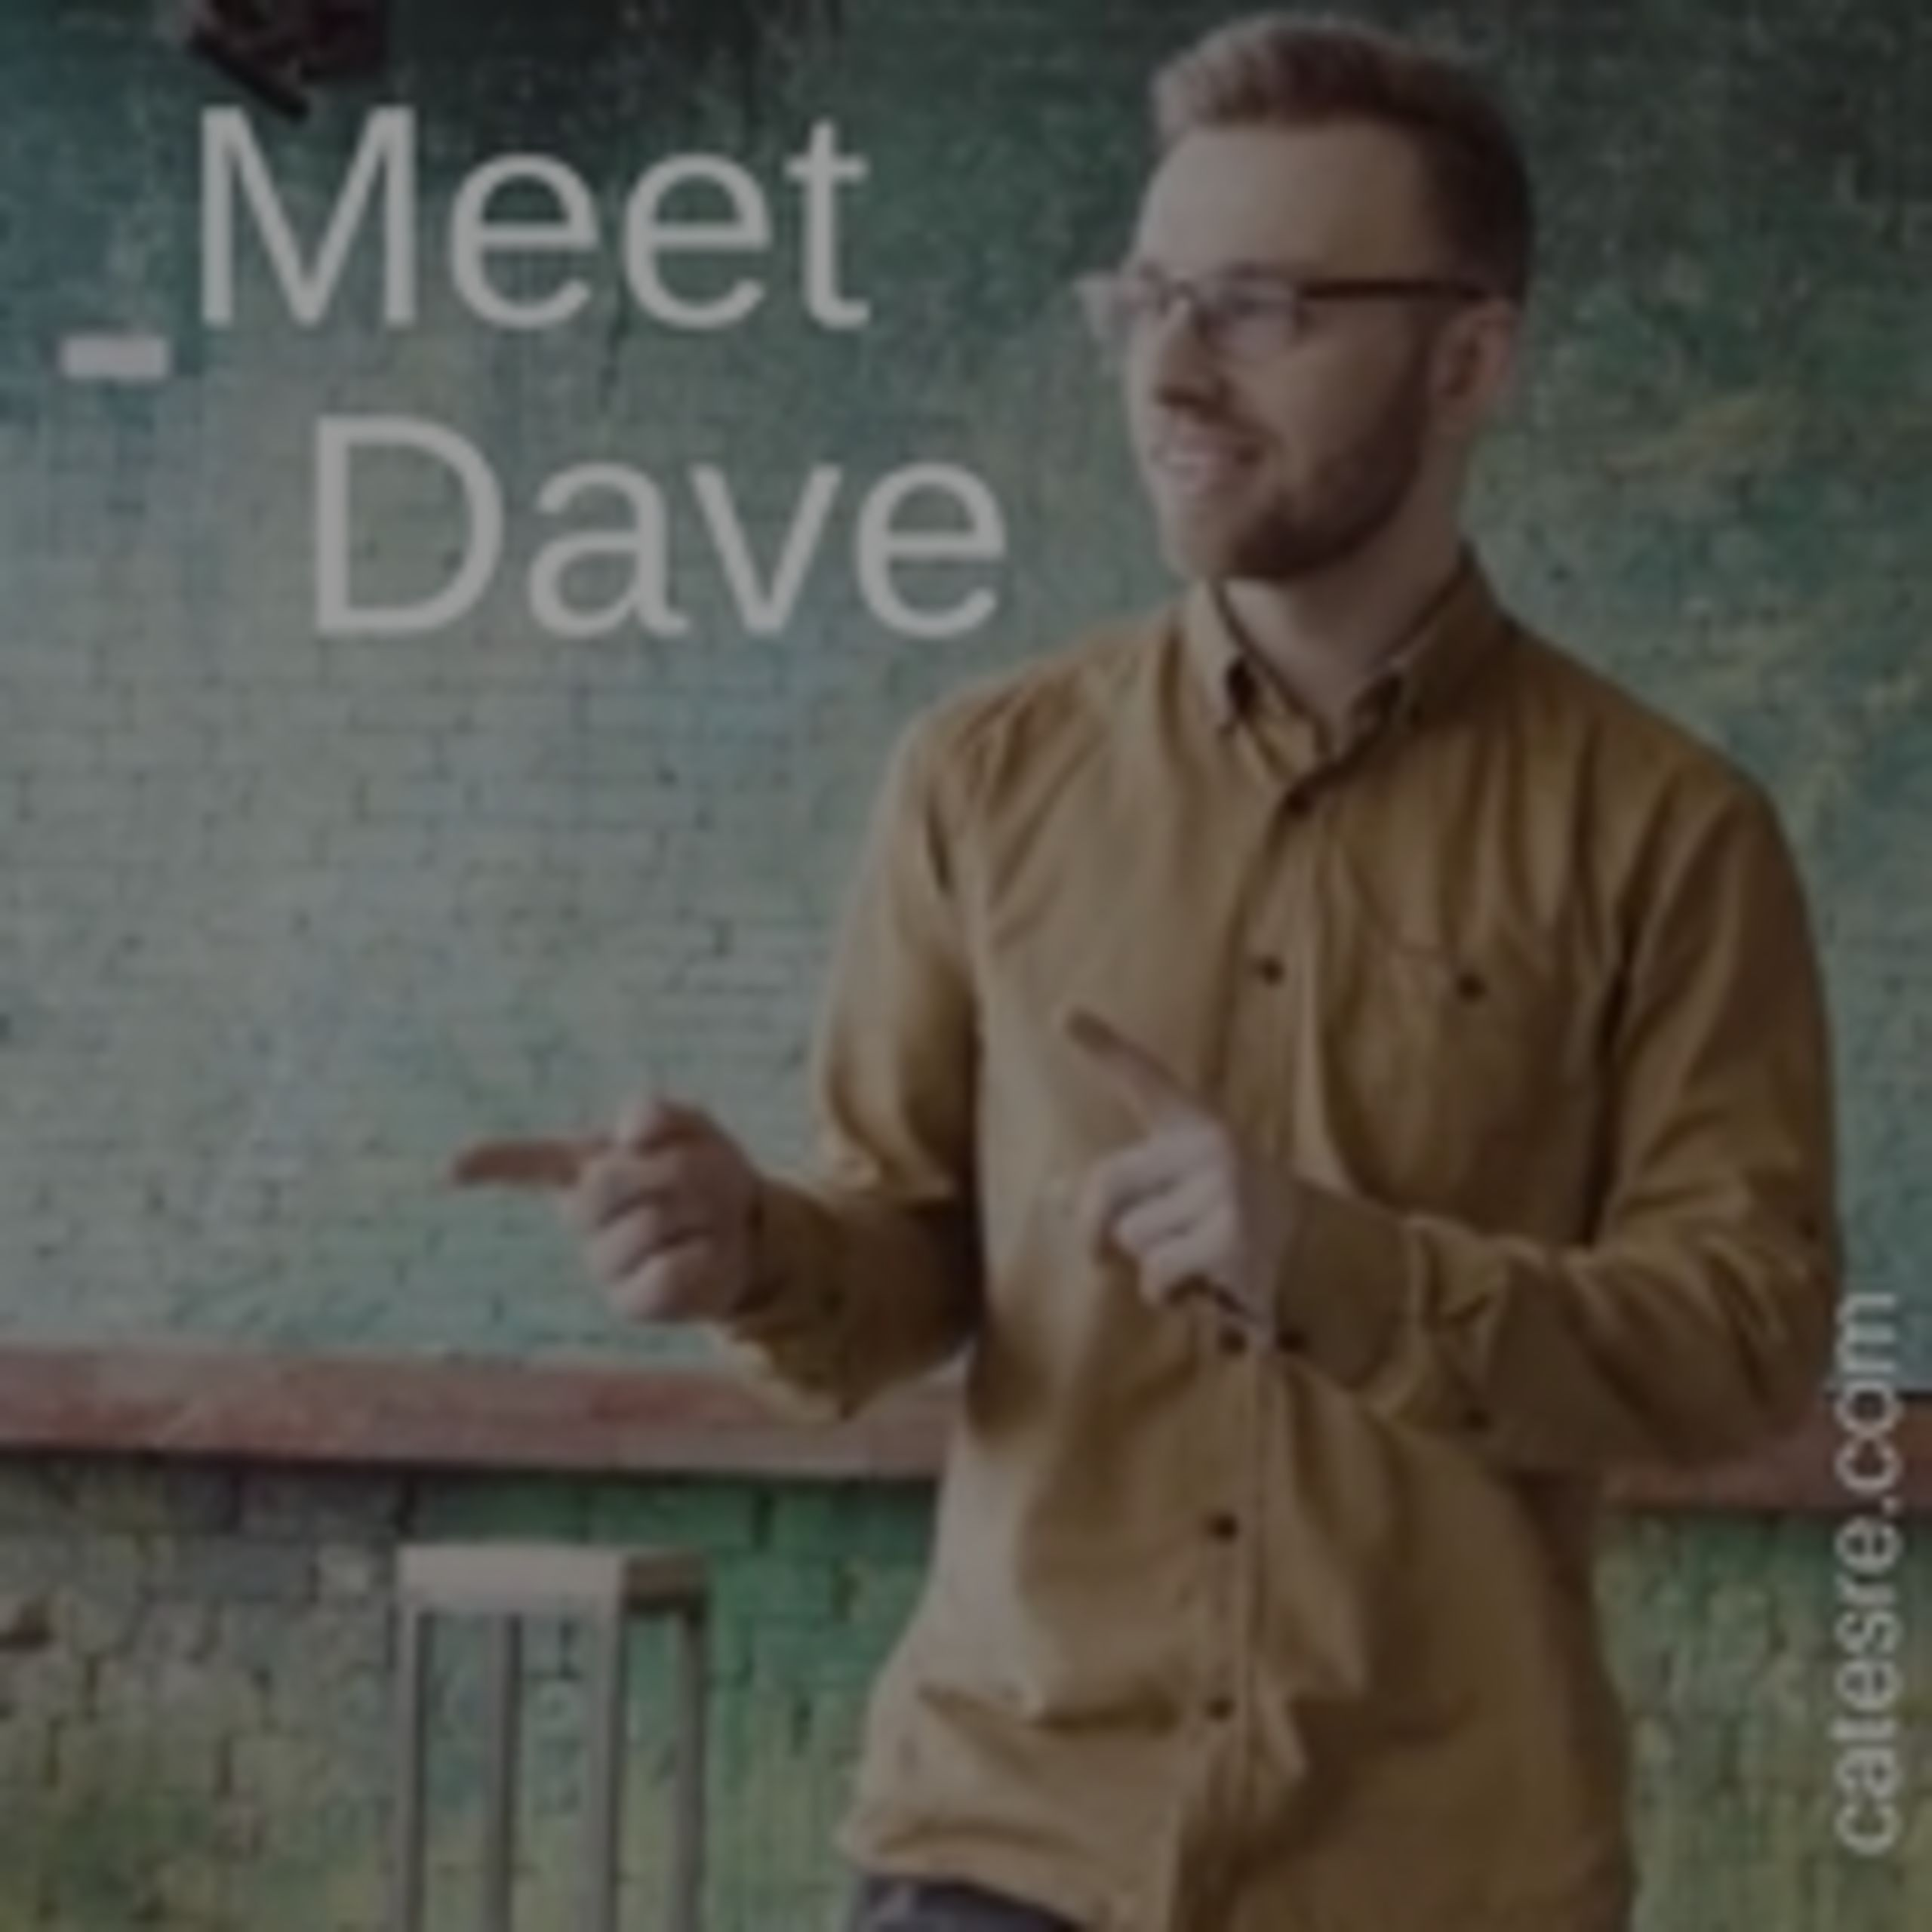 Be Like Dave